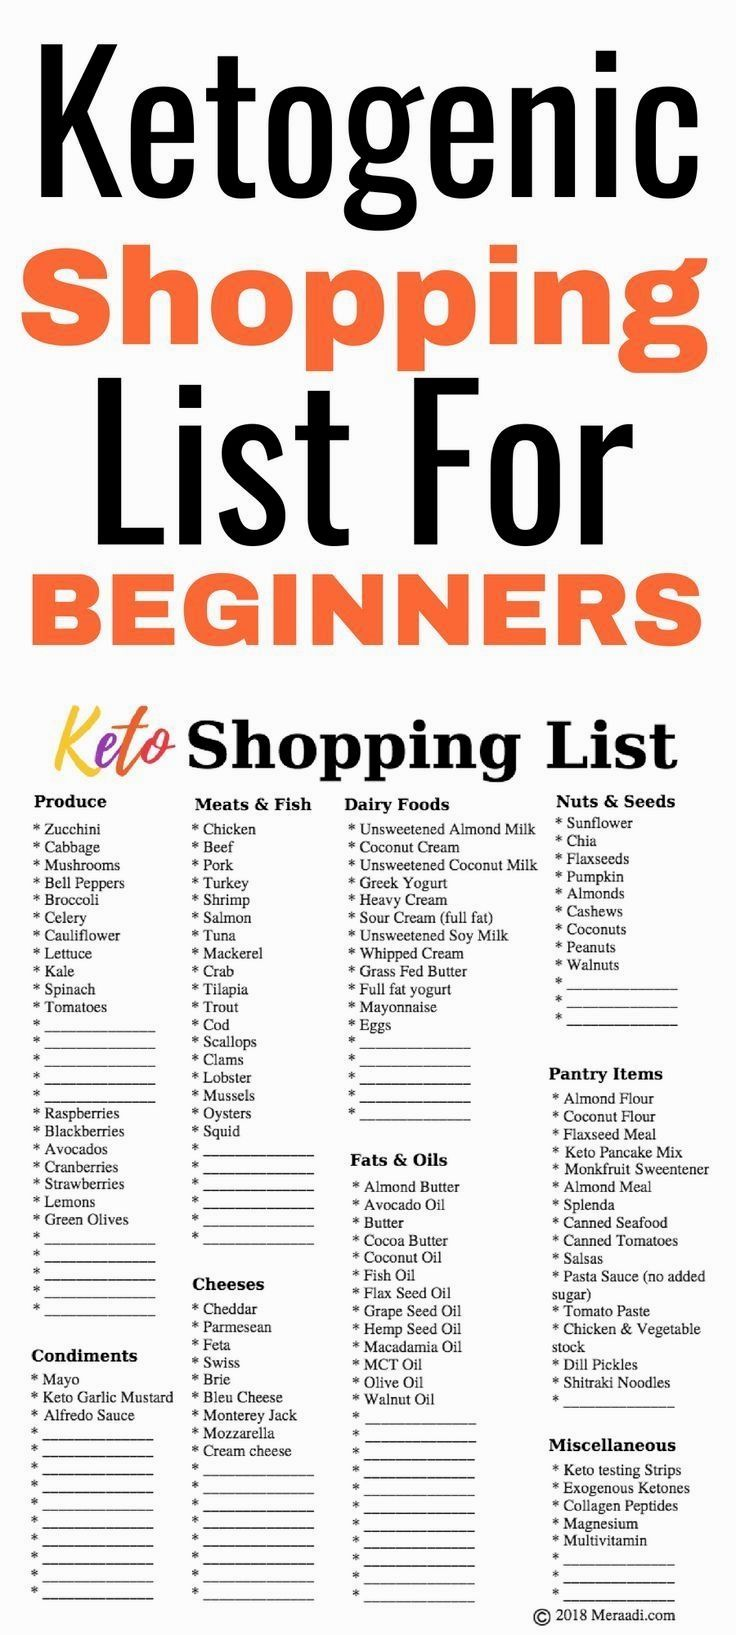 This ketogenic shopping list for beginners lists e…